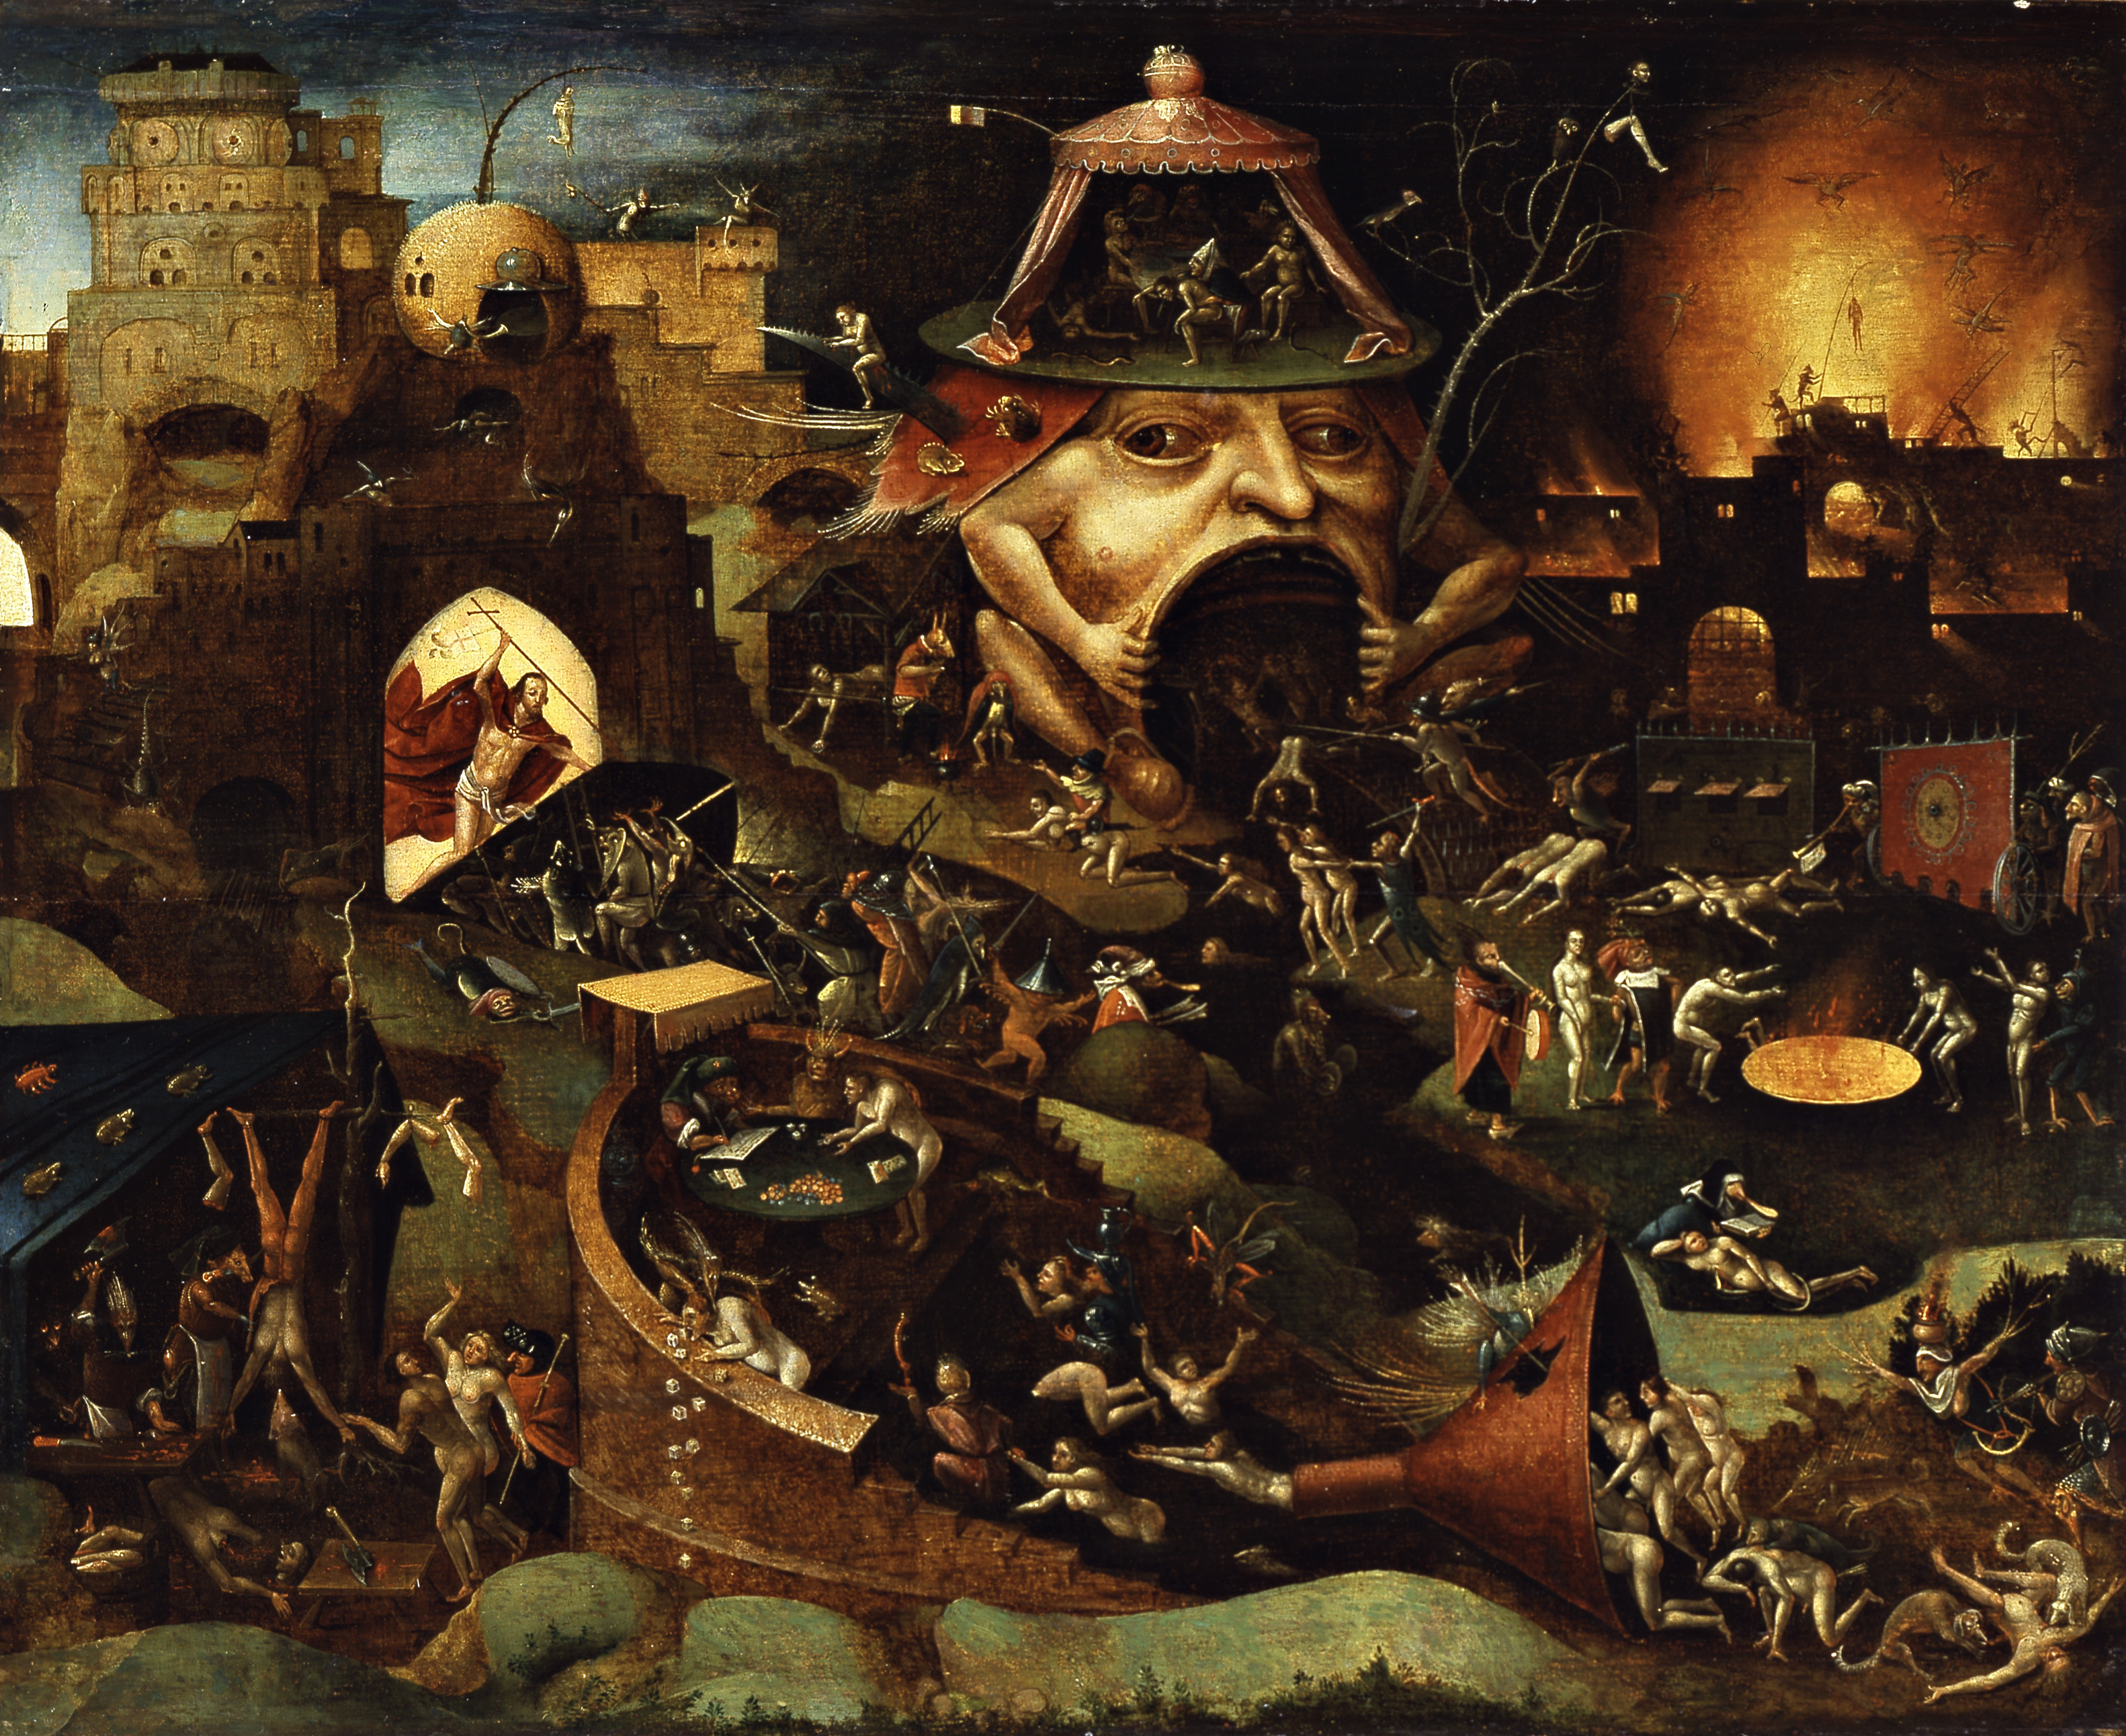 https://upload.wikimedia.org/wikipedia/commons/3/3c/Follower_of_Jheronimus_Bosch_Christ_in_Limbo.jpg